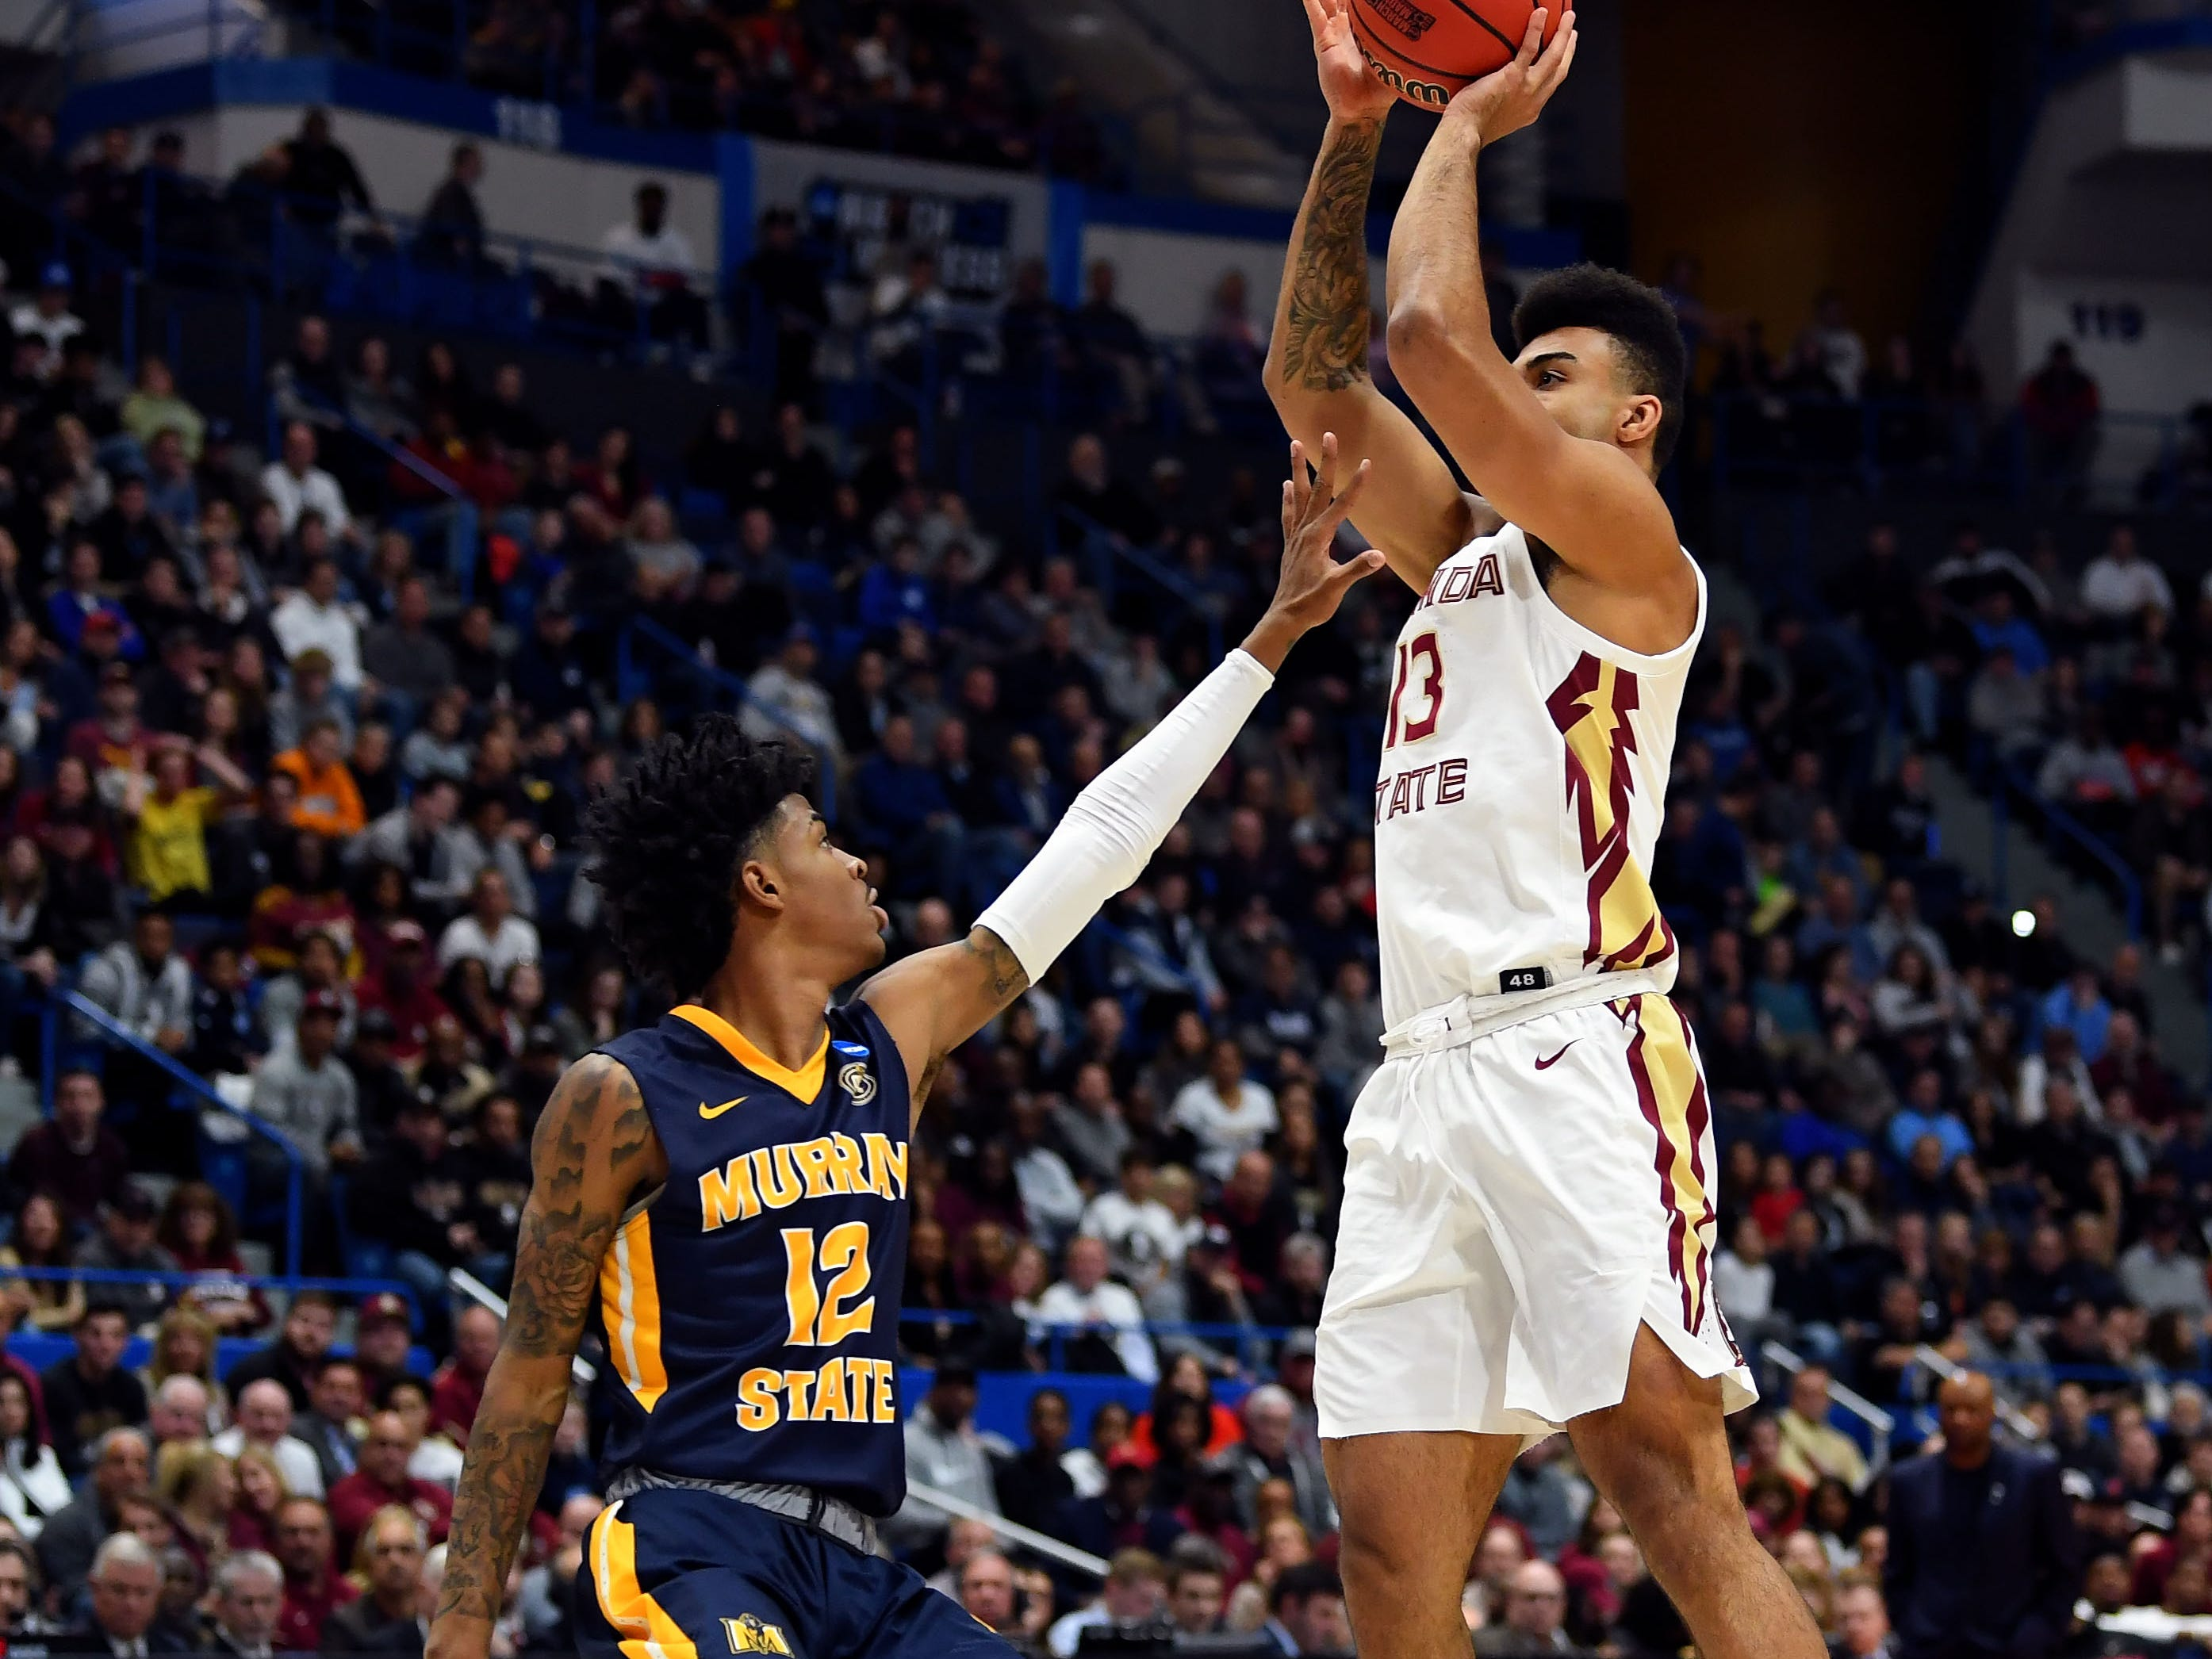 Mar 23, 2019; Hartford, CT, USA; Florida State Seminoles guard Anthony Polite (13) attempts a shot over Murray State Racers guard Ja Morant (12) during the first half of a game in the second round of the 2019 NCAA Tournament at XL Center. Mandatory Credit: Robert Deutsch-USA TODAY Sports